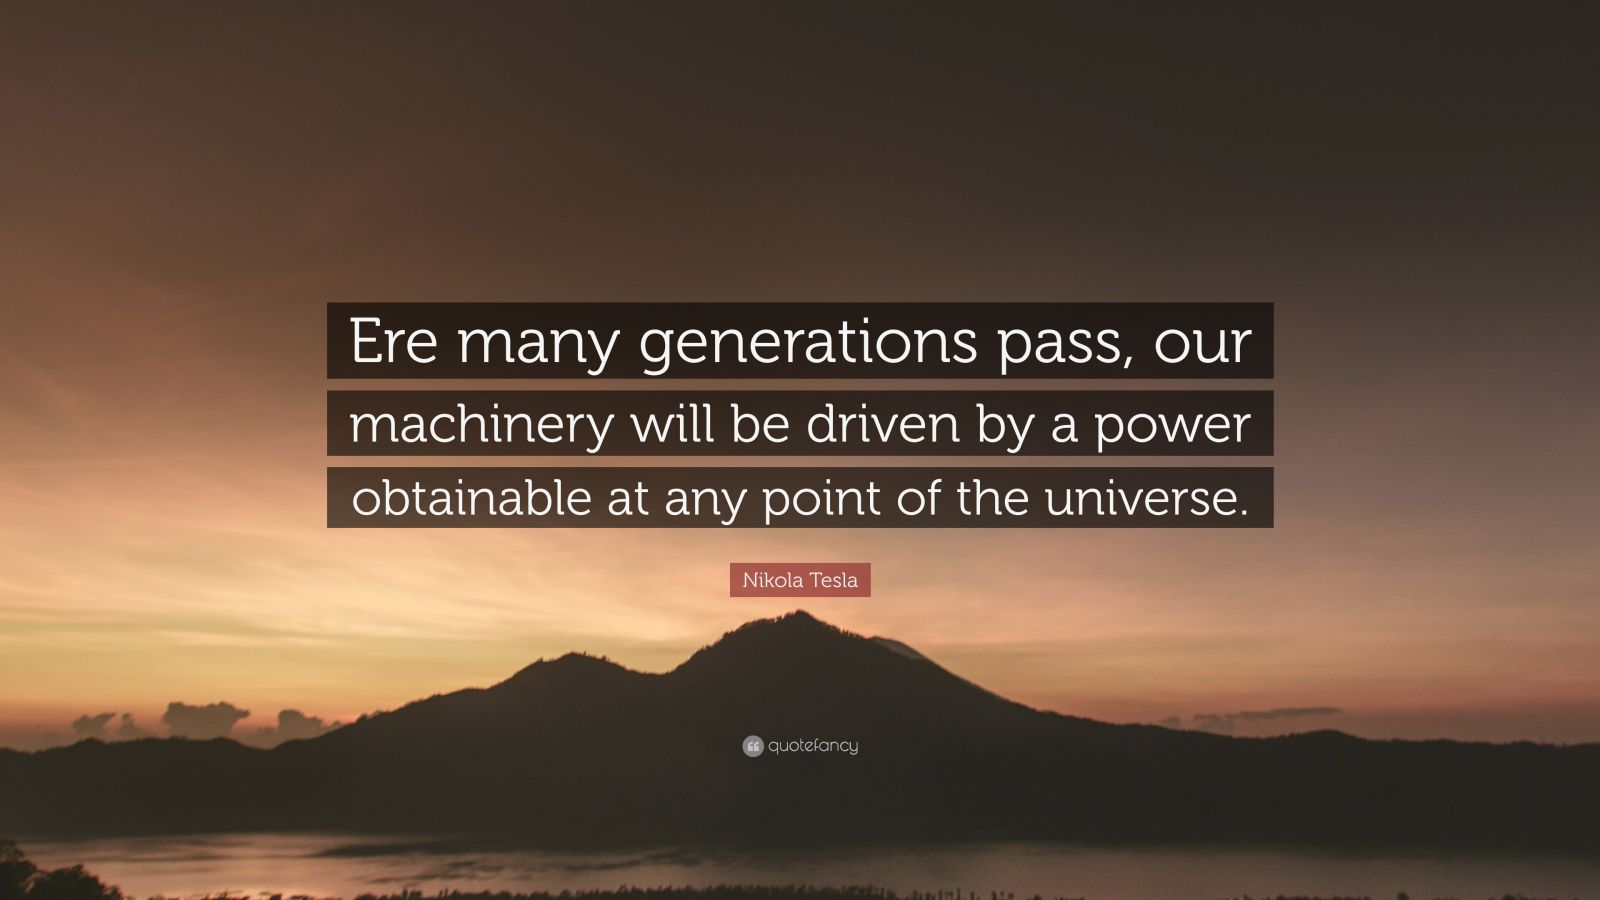 """Nikola Tesla Quote: """"Ere many generations pass, our machinery will be driven by a power obtainable at any point of the universe."""""""